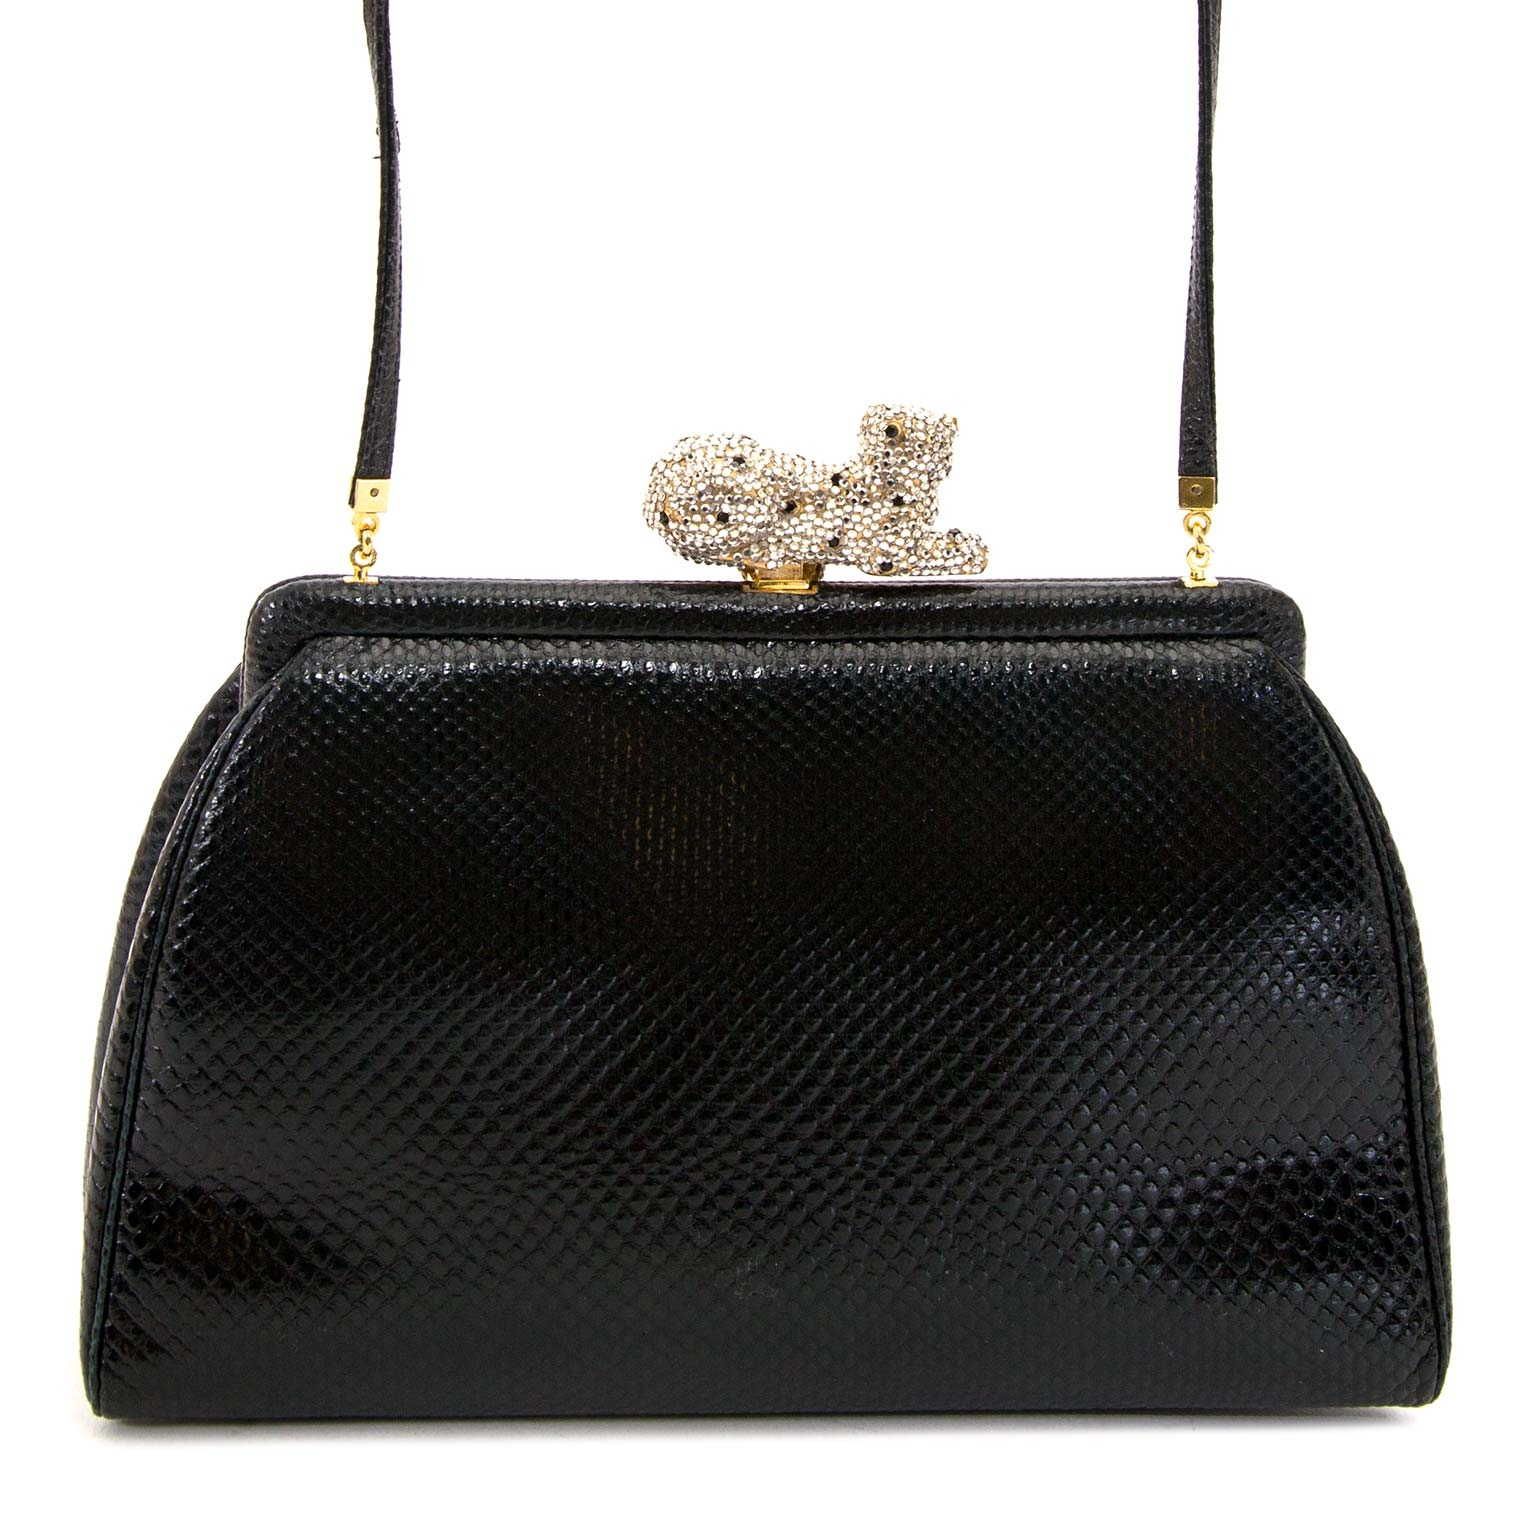 8b9ce5b7f0a9 ... buy Judith Leiber Black Leather Crossbody bag at labellov for the best  price